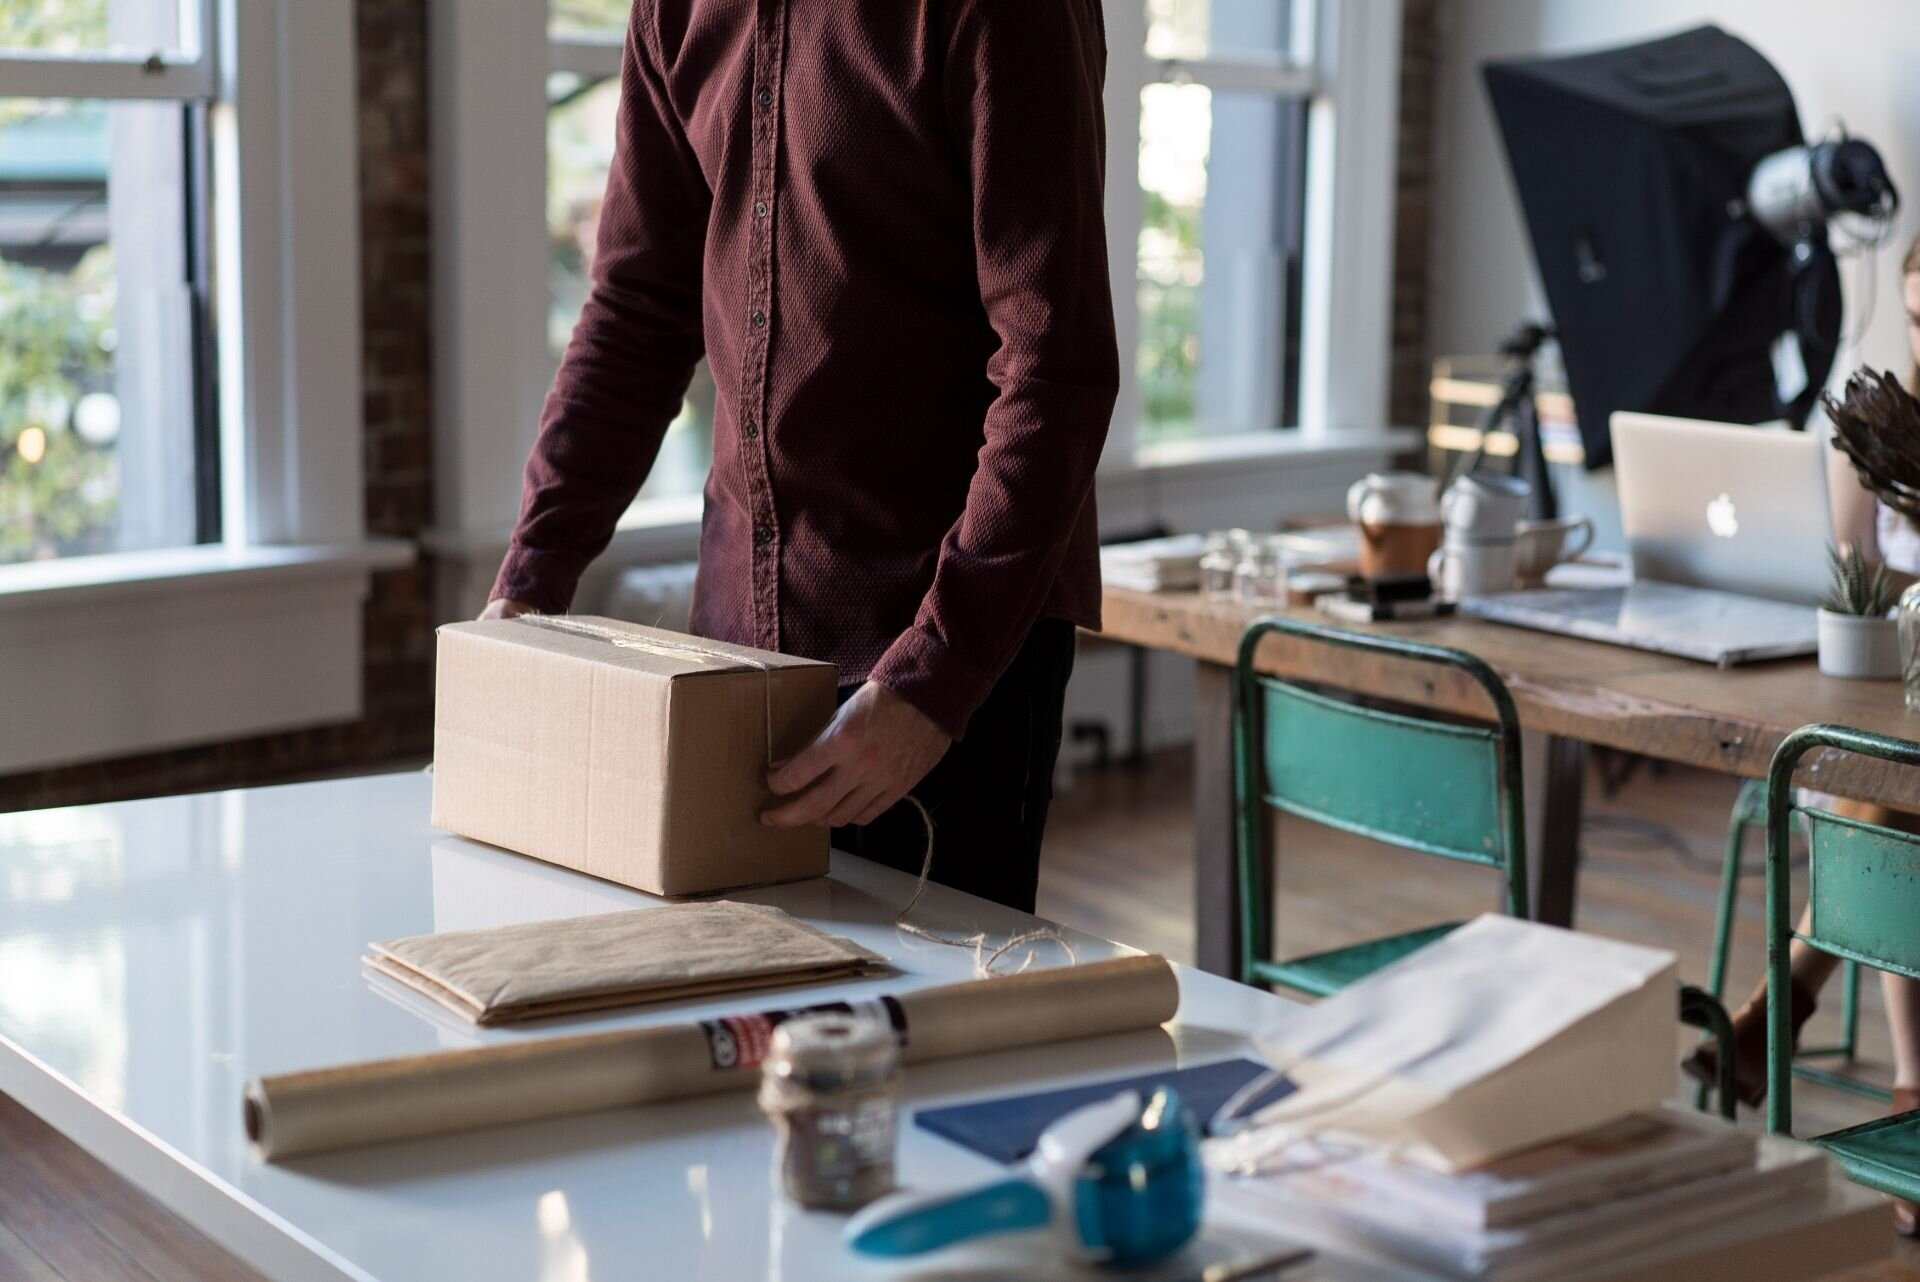 Amazon Workplace Package Delivery? Are you ok with limited privacy?